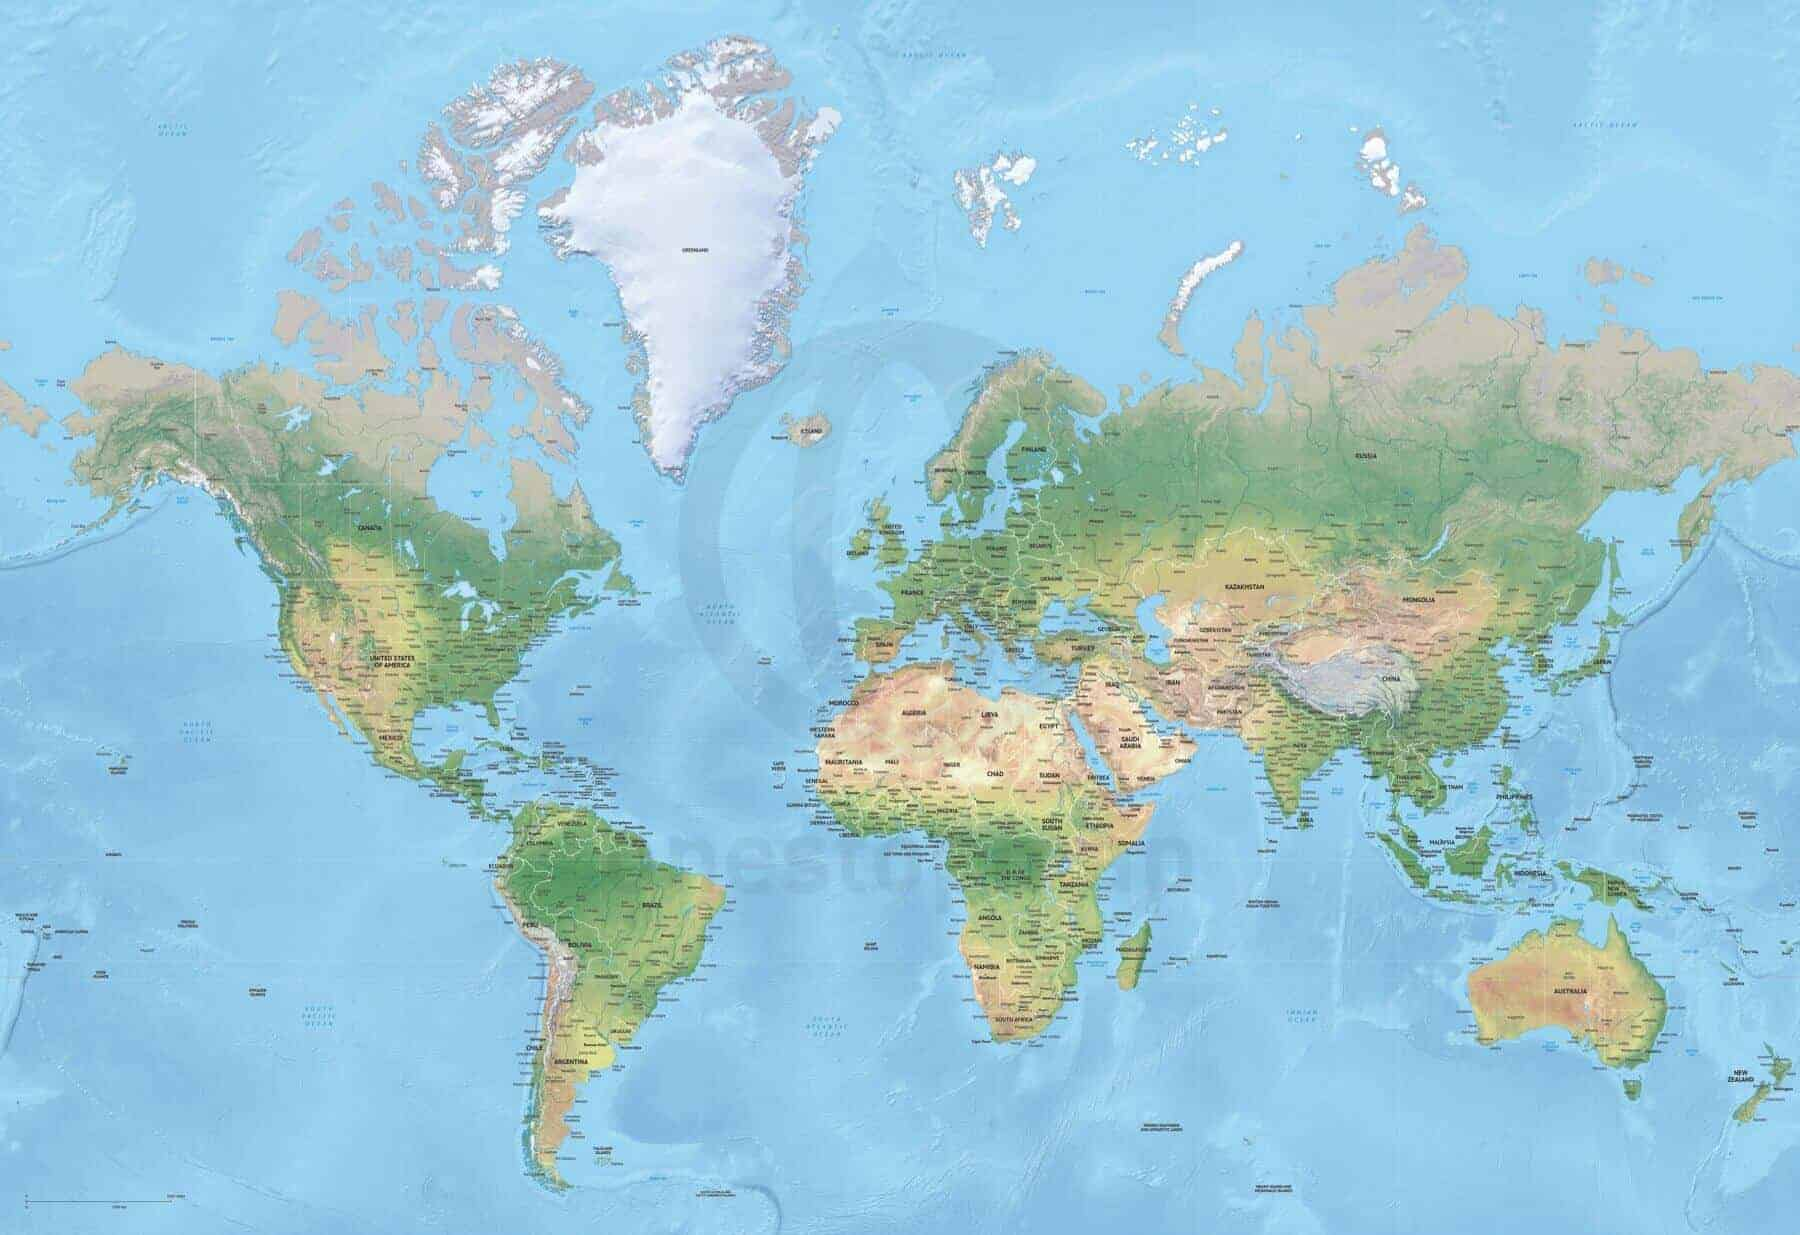 Map of world political shaded relief high detail mercator europe-africa centered